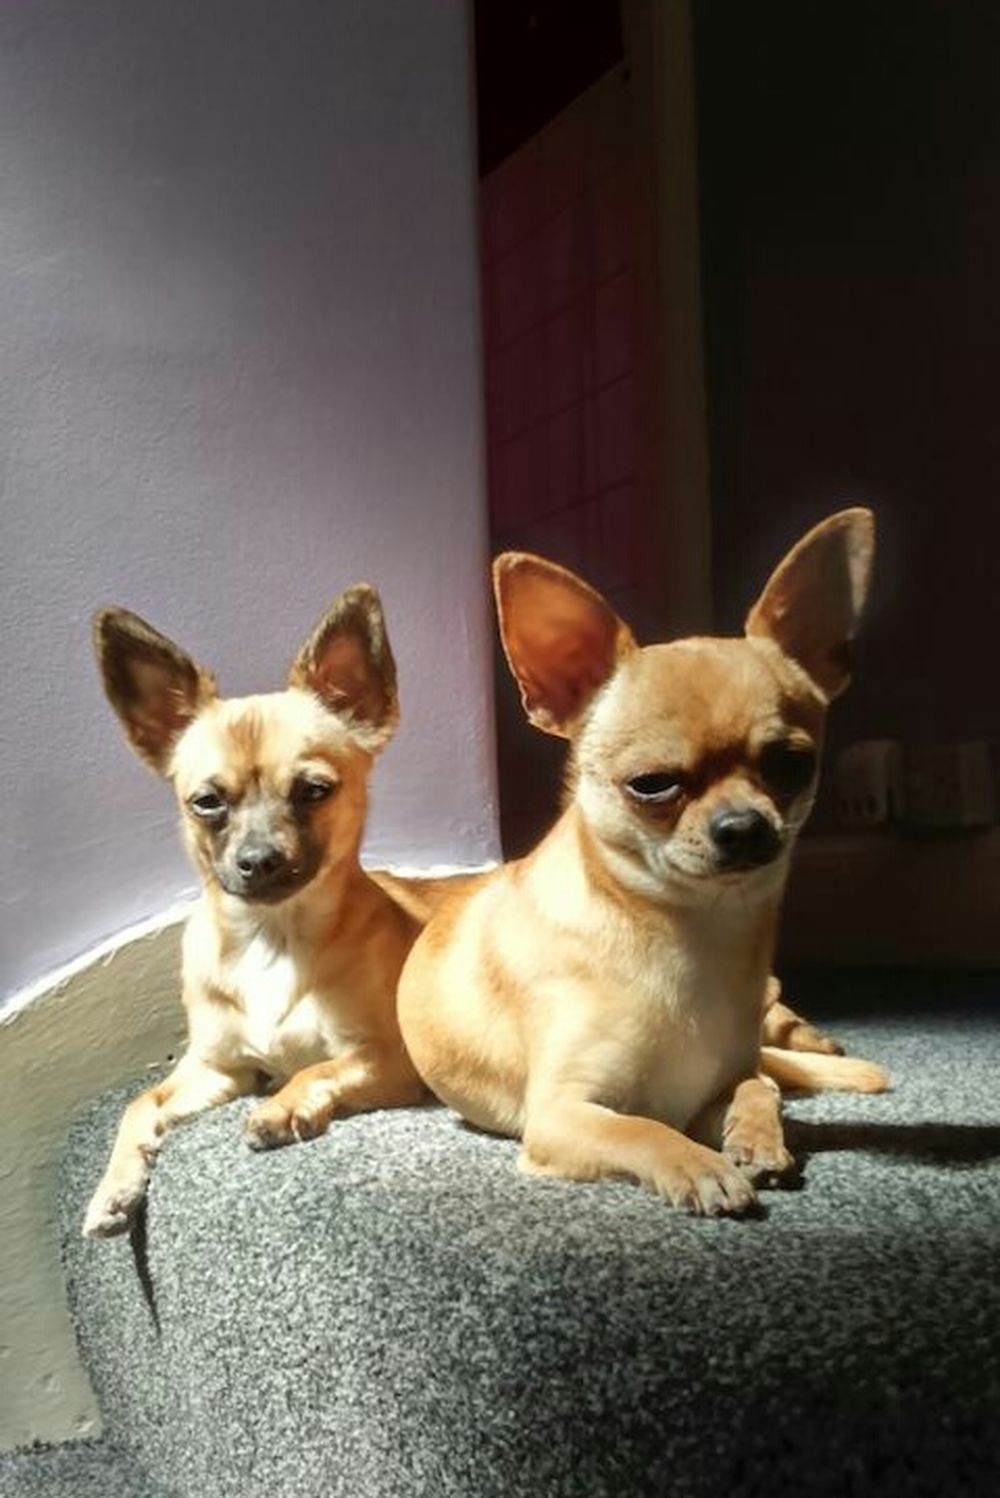 Sunlight Shade Light And Shadow Mix Breed Chihuahua Mix Chihuahua Dogs Chihuahuas Little Dogs Small Dogs  Sitting Dogs Sitting Sitting Pretty On The Stairs Top Of The Stairs Cute Pets Cute Dogs Dogs Of EyeEm EyeEm Dogs Sun Shine Attention Light And Dark Two Is Better Than One